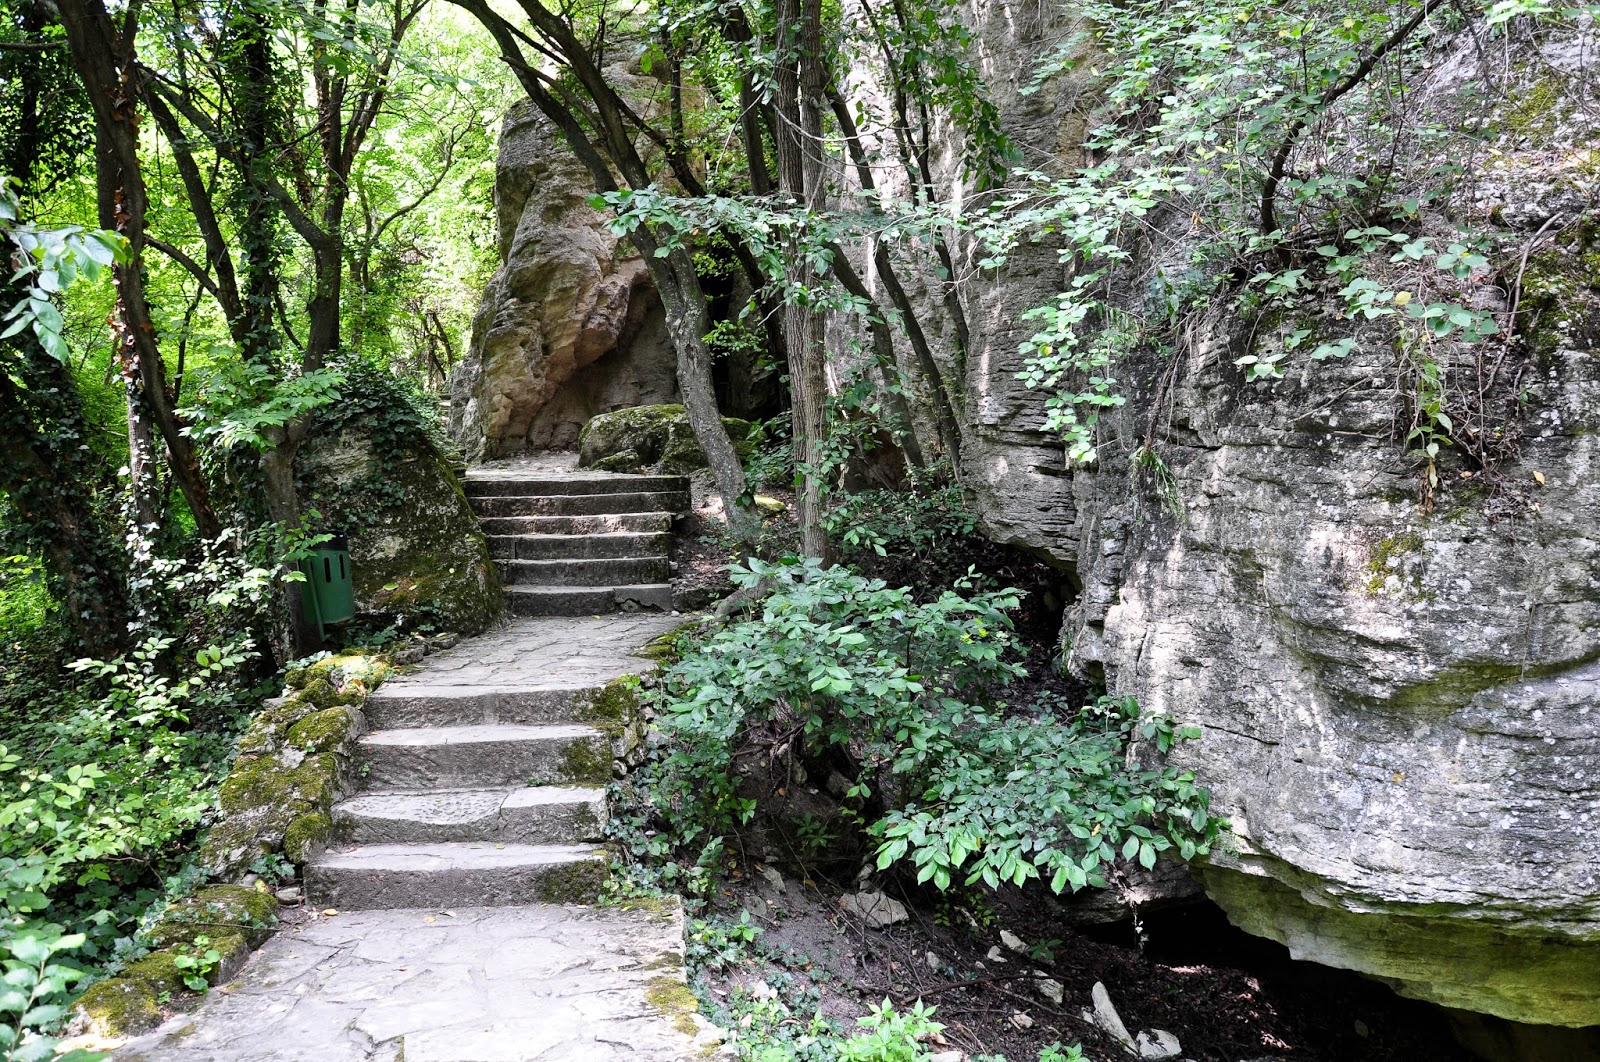 The stone steps, Madara, Bulgaria